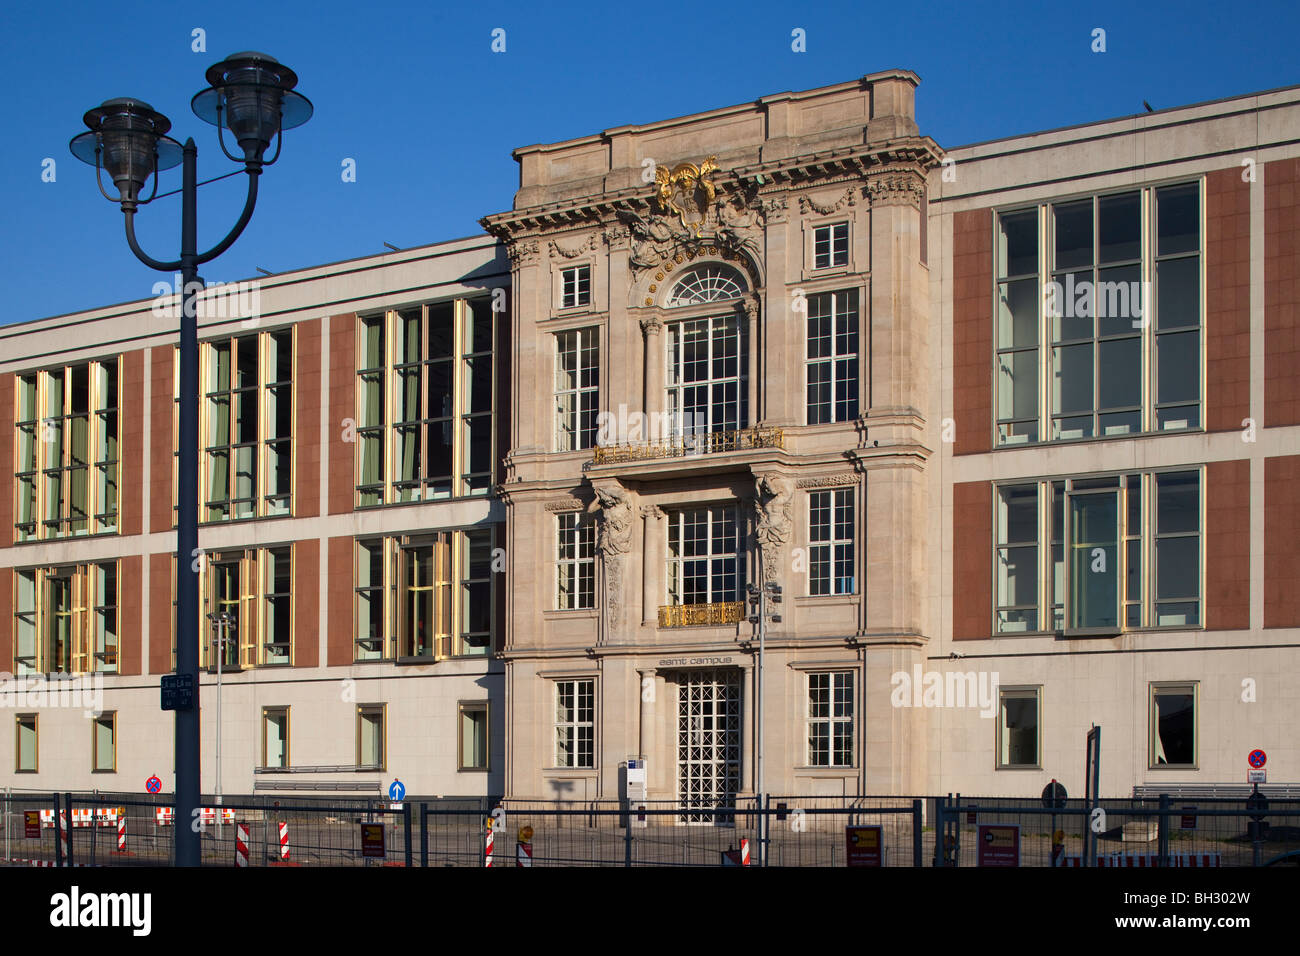 The Council of State building of the former GDR, Berlin, Germany - Stock Image